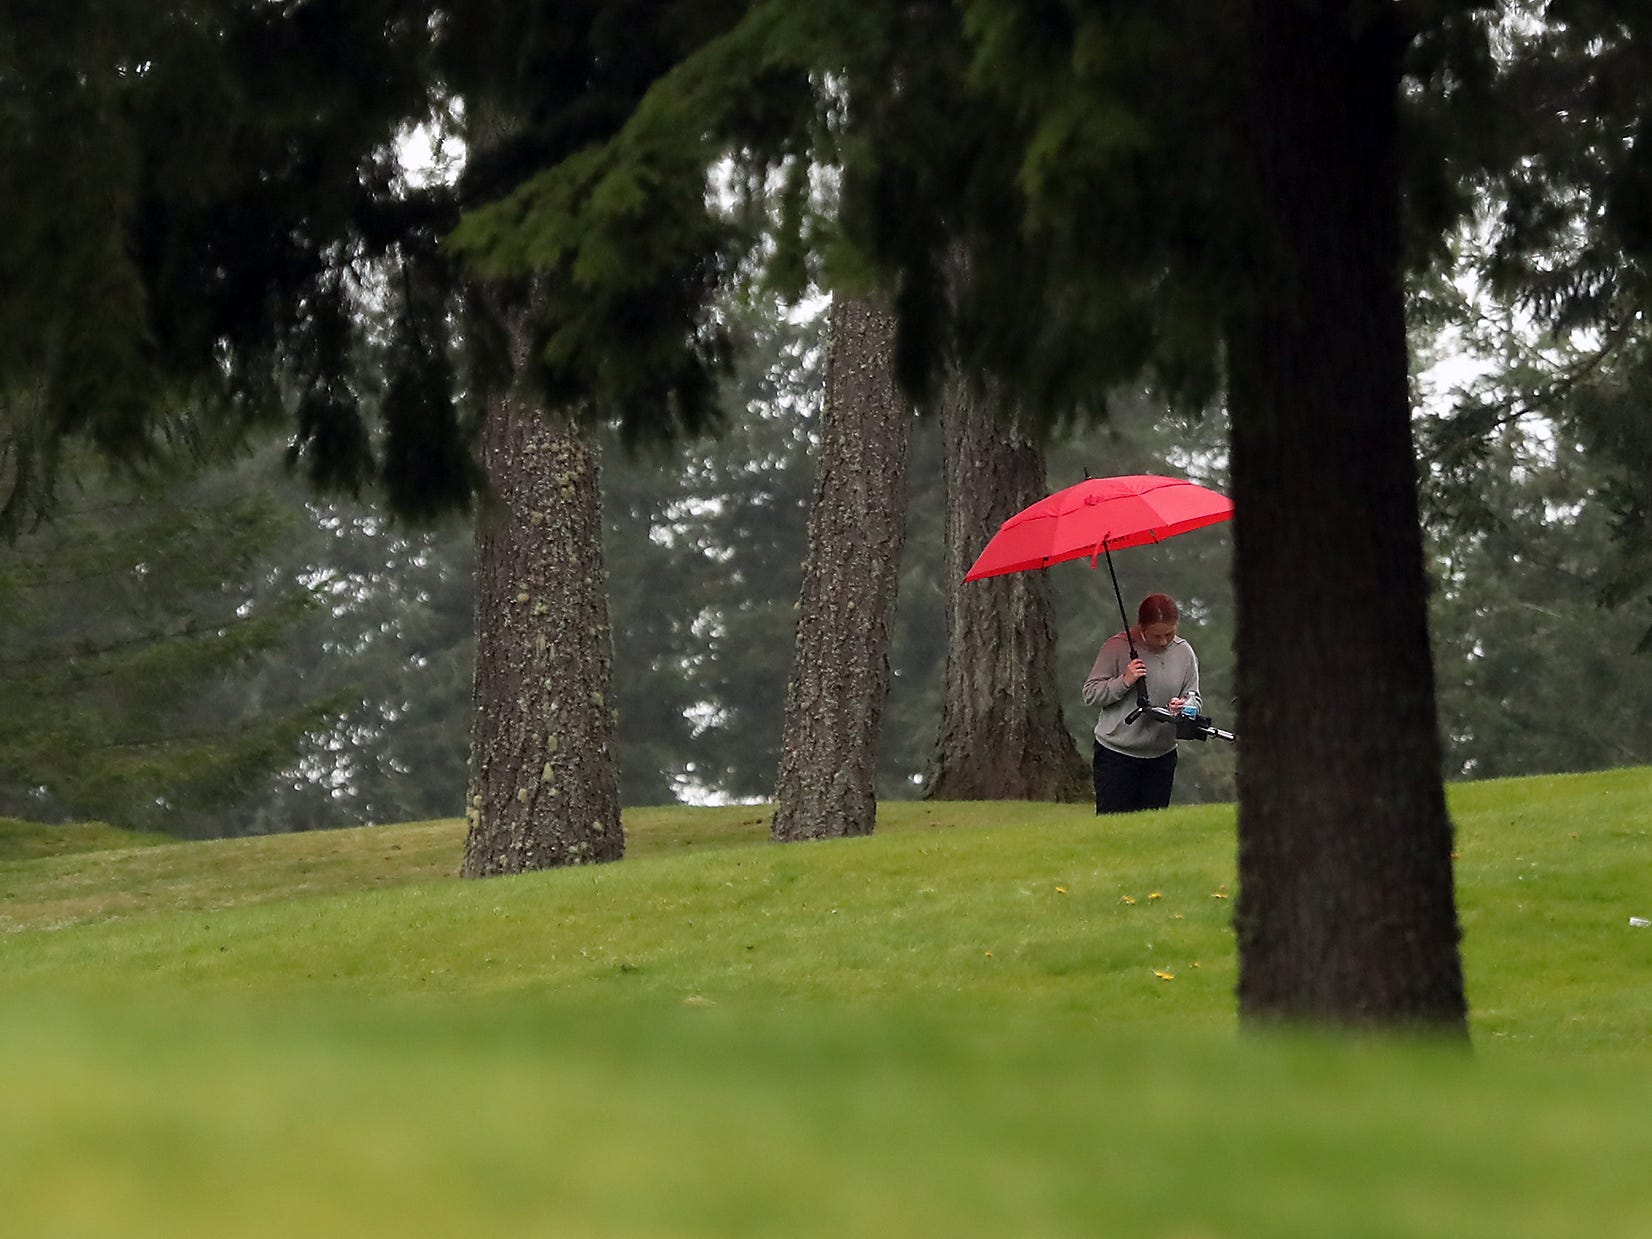 A golfer pauses among the trees to write down a score underneath her umbrella on Tuesday, April 16, 2019.